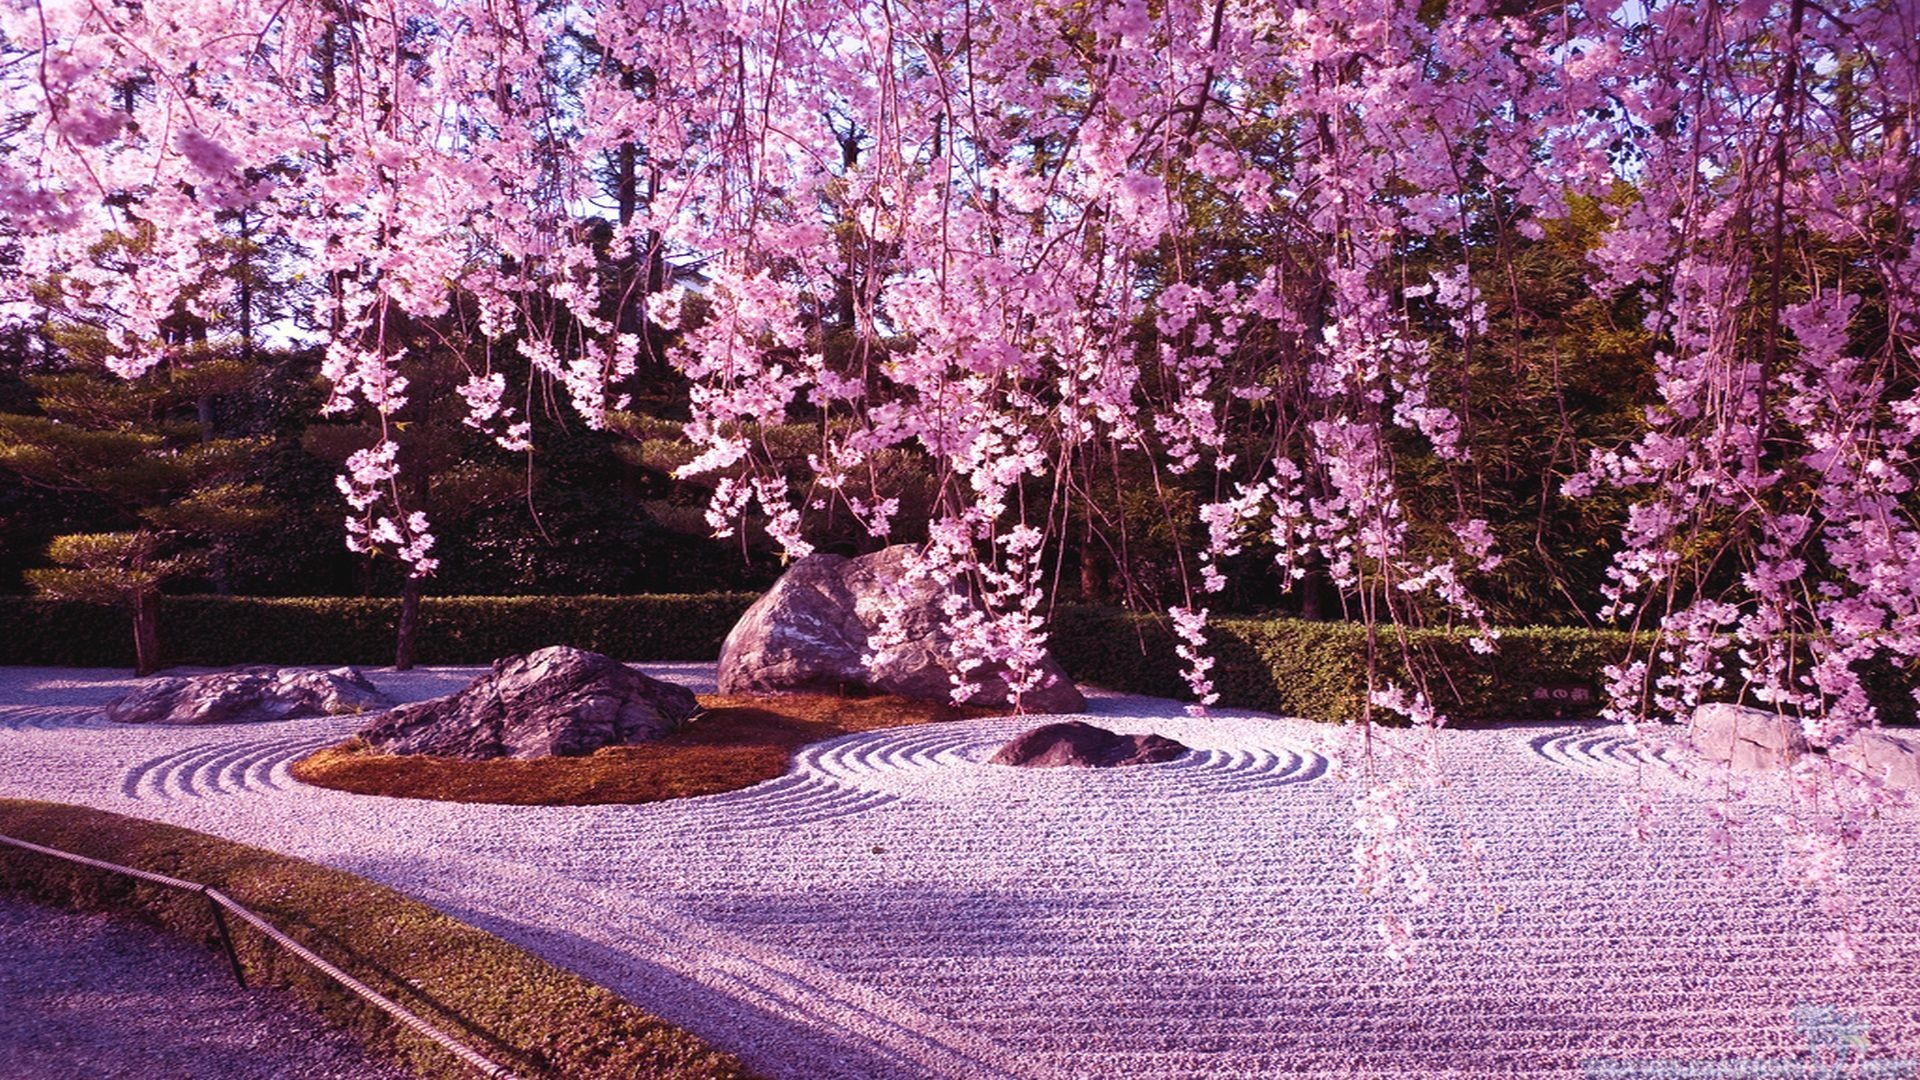 Beautiful Cherry Blossom Wallpapers in High Resolution